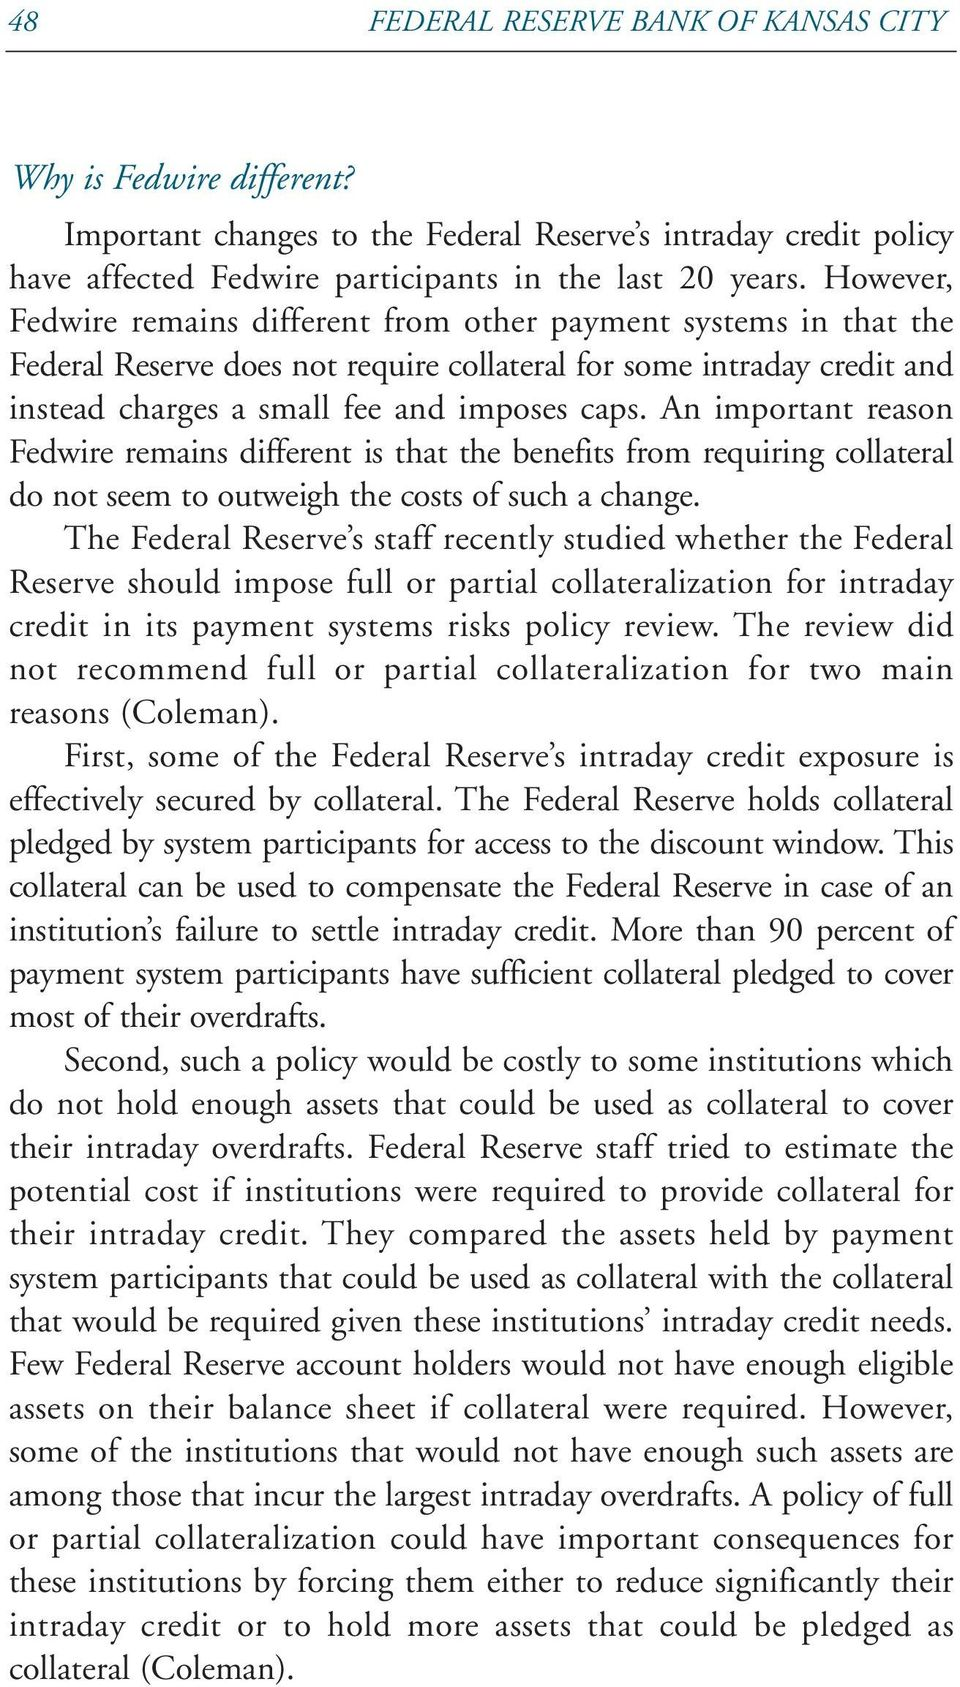 An important reason Fedwire remains different is that the benefits from requiring collateral do not seem to outweigh the costs of such a change.